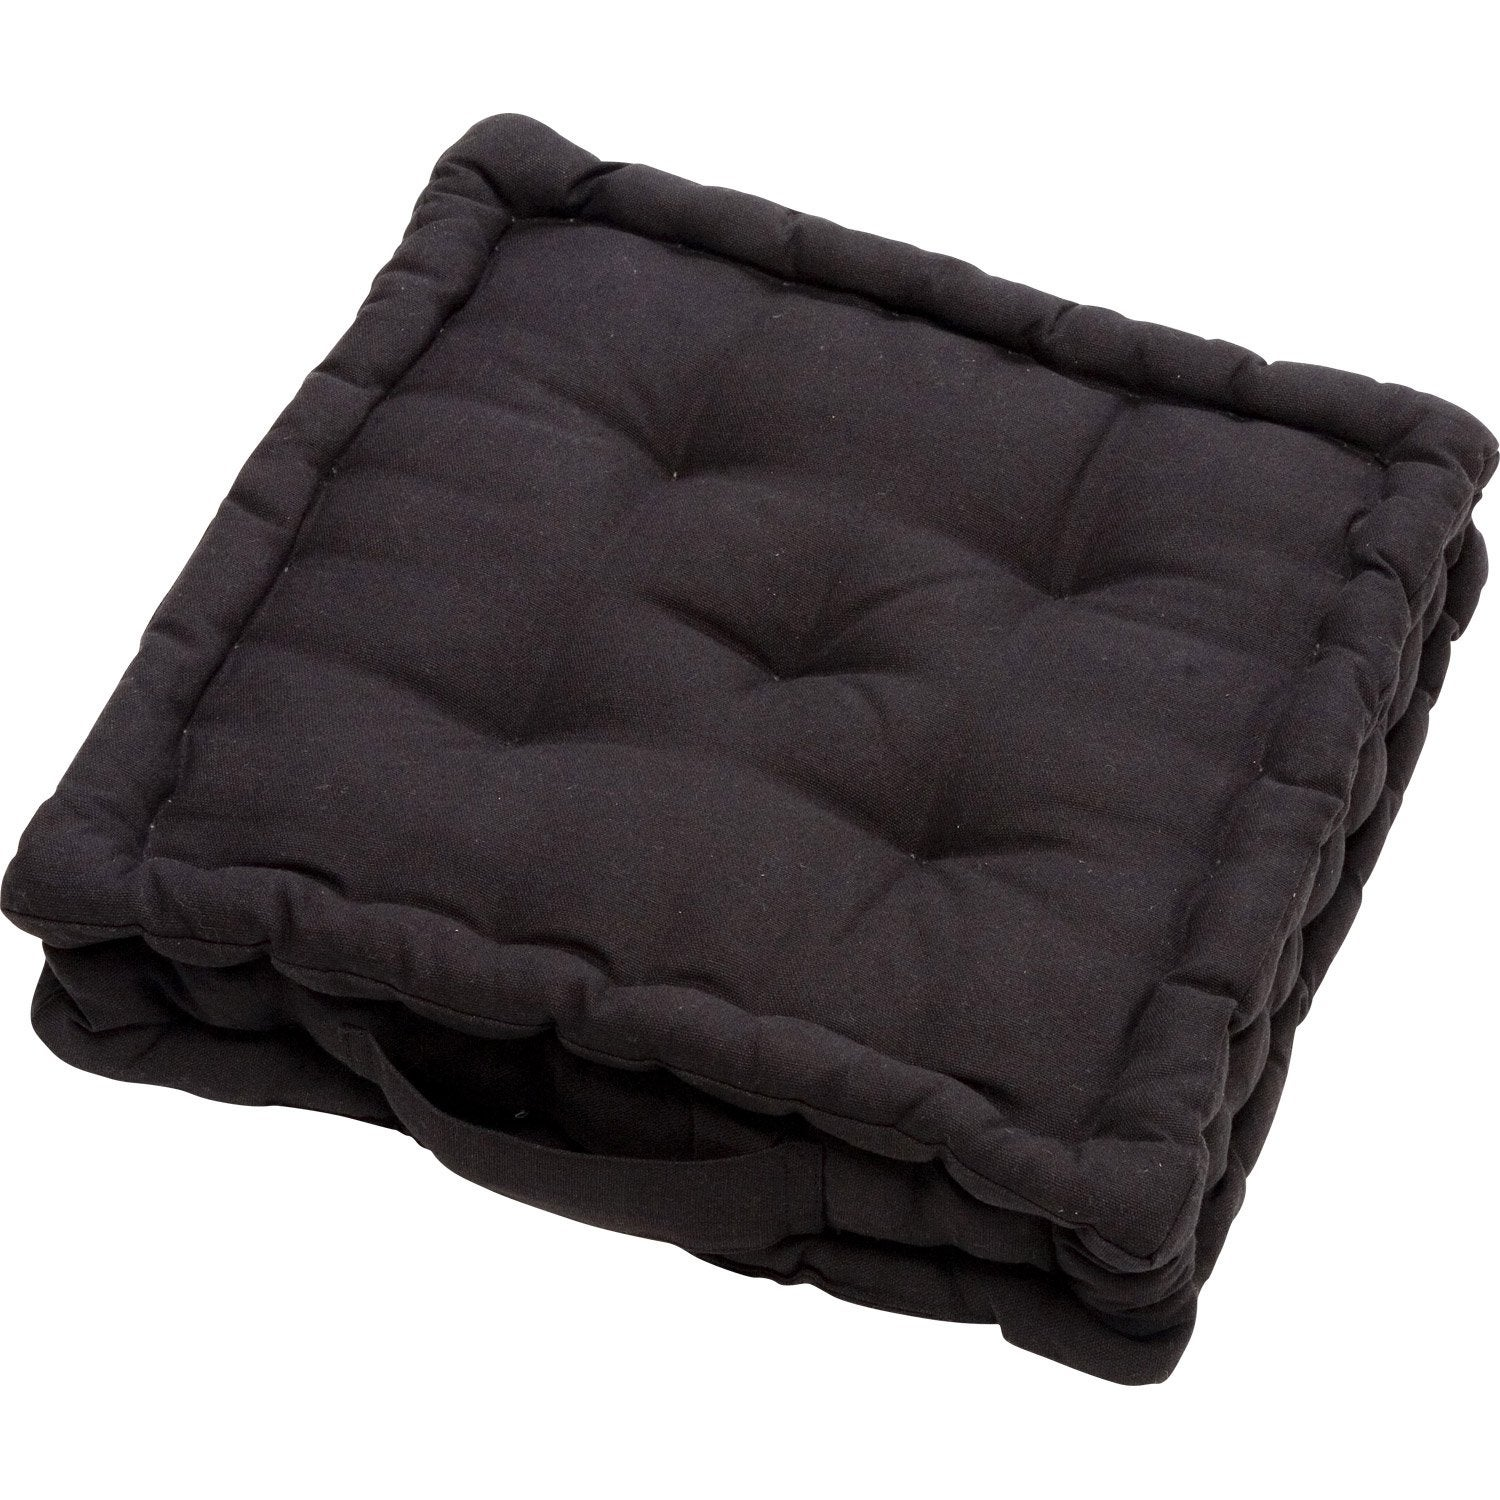 coussin de sol cl a noir noir n 0 40 x 40 cm leroy merlin. Black Bedroom Furniture Sets. Home Design Ideas